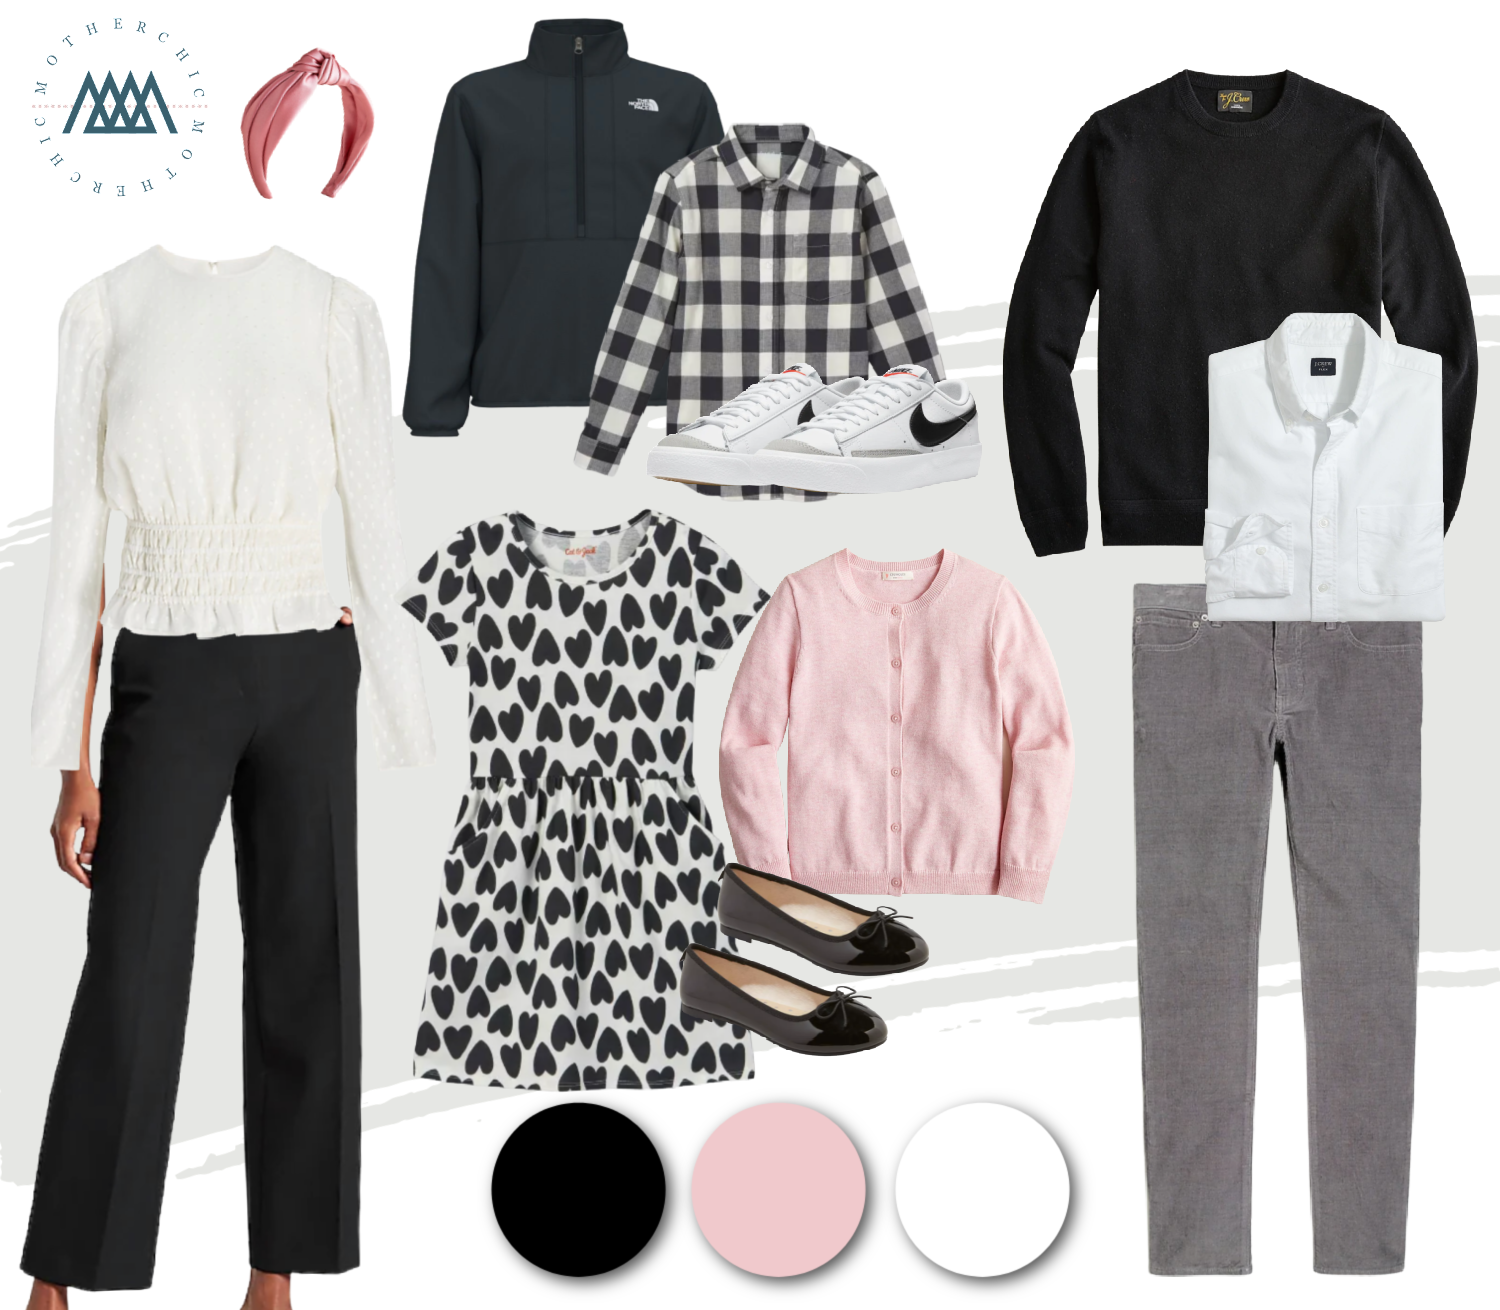 The motherchic family photo outfit ideas